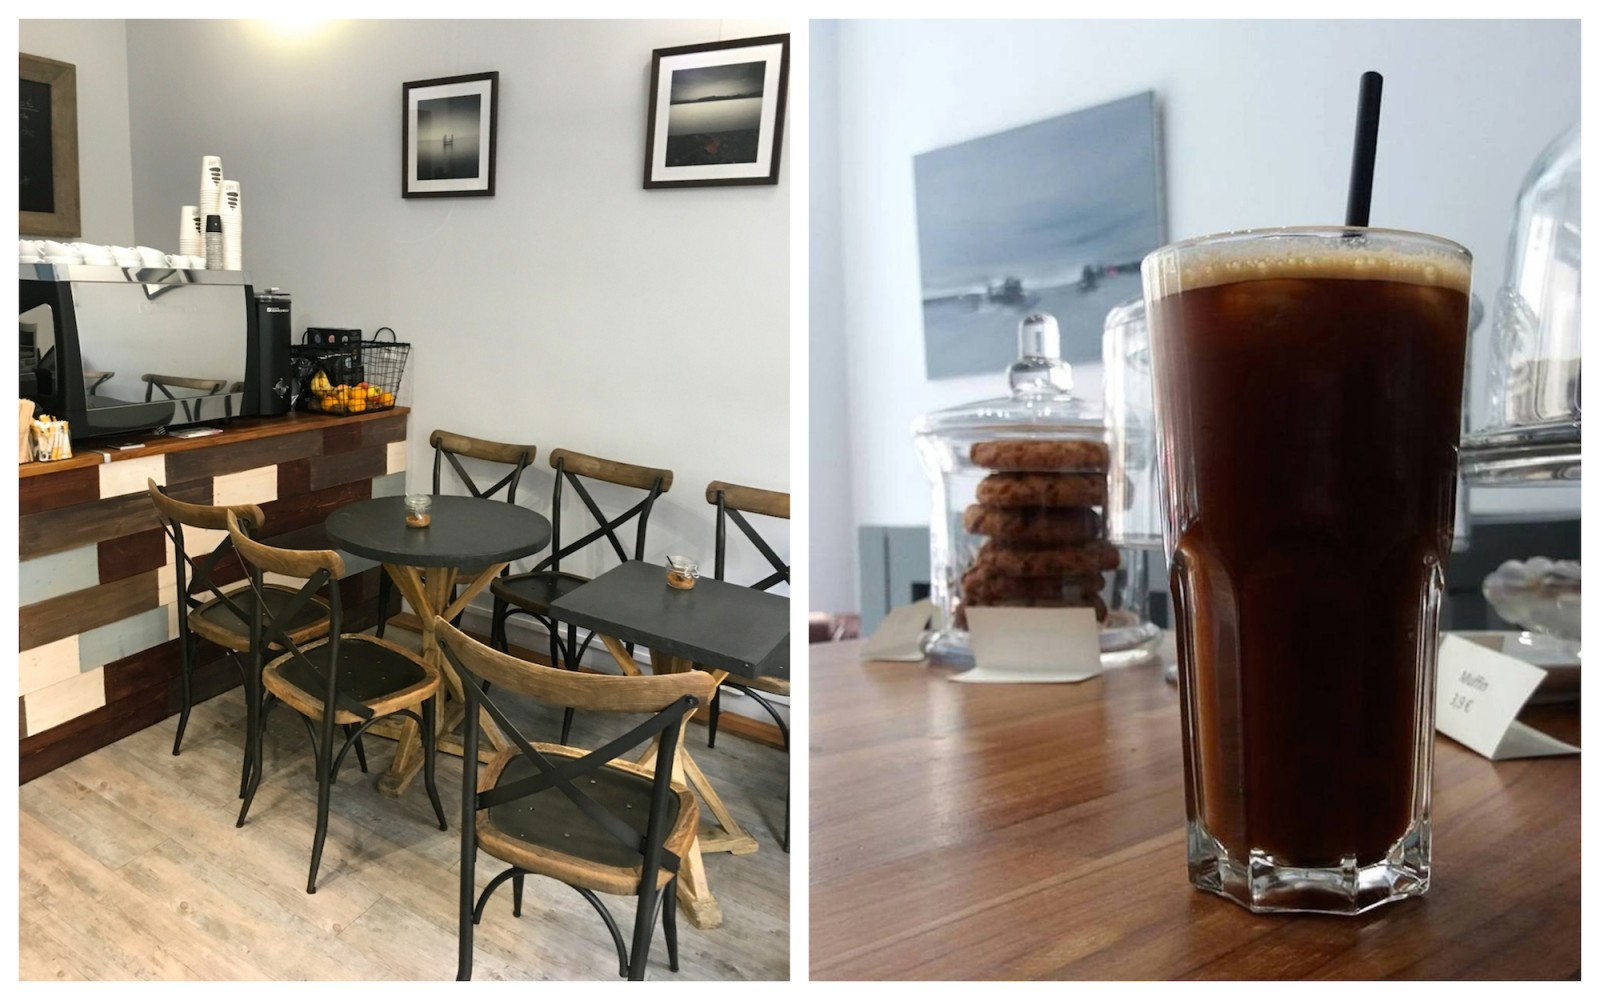 HiP Paris Blog visits Le Cairn - naturopathy and coffee shop